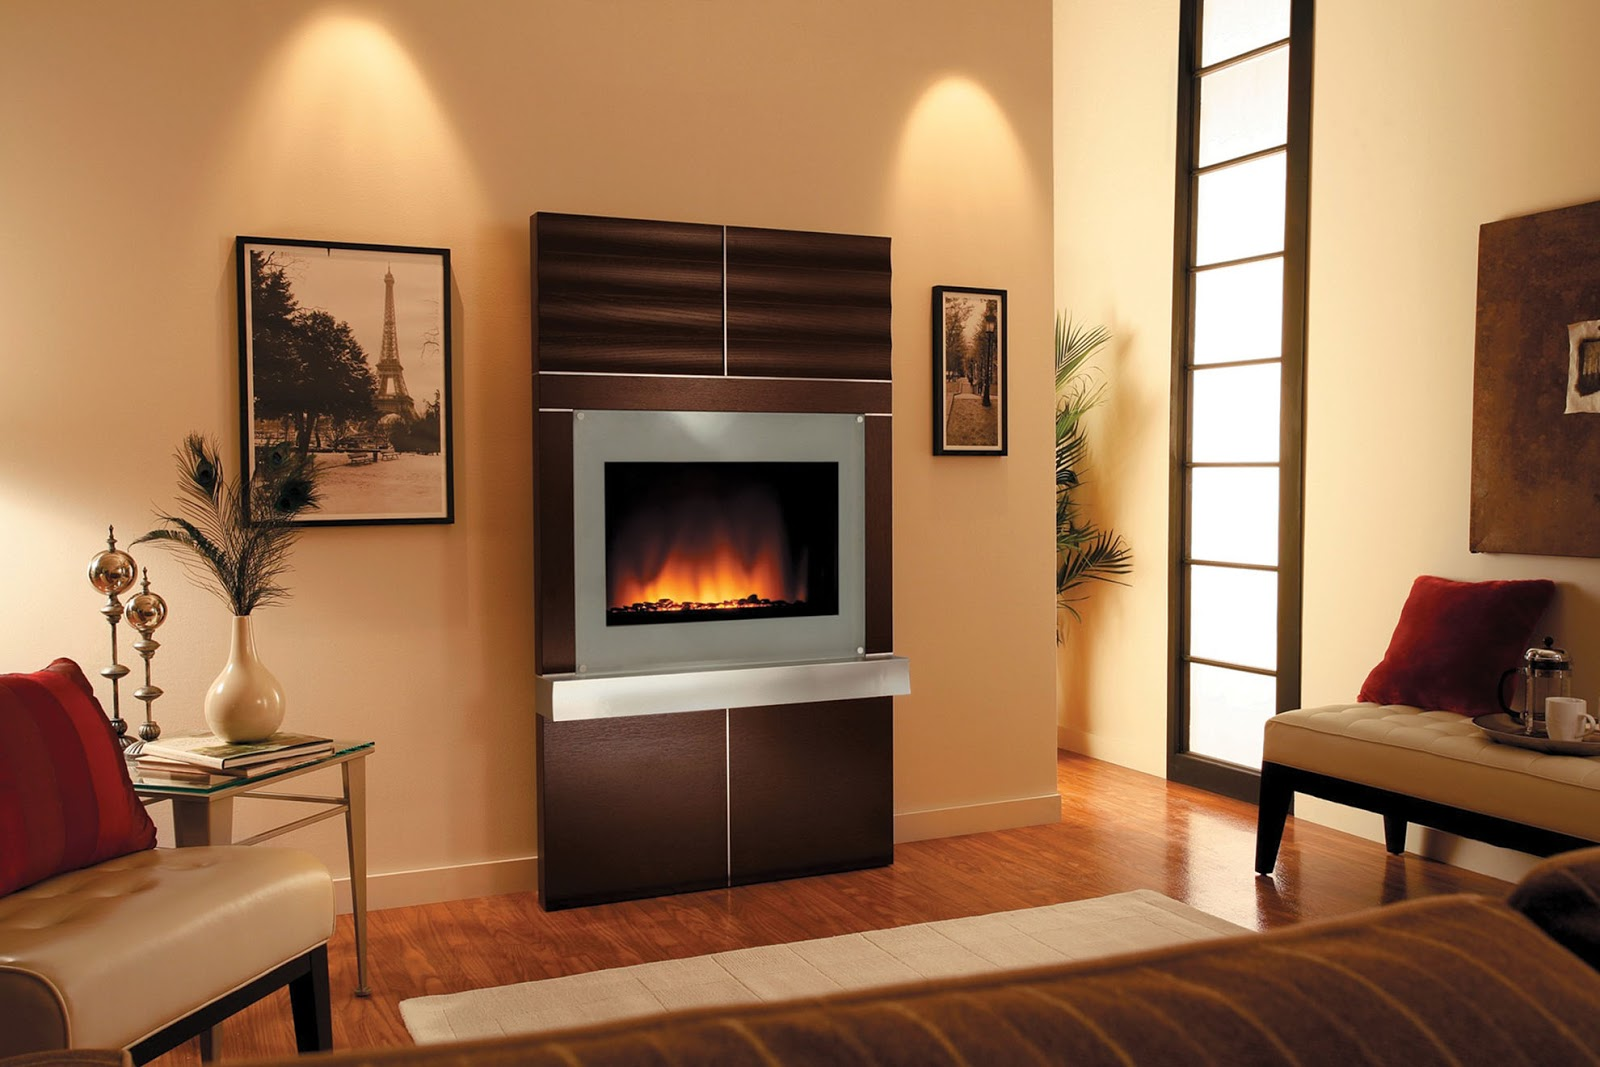 T v wall unit design Living room design ideas with fireplace